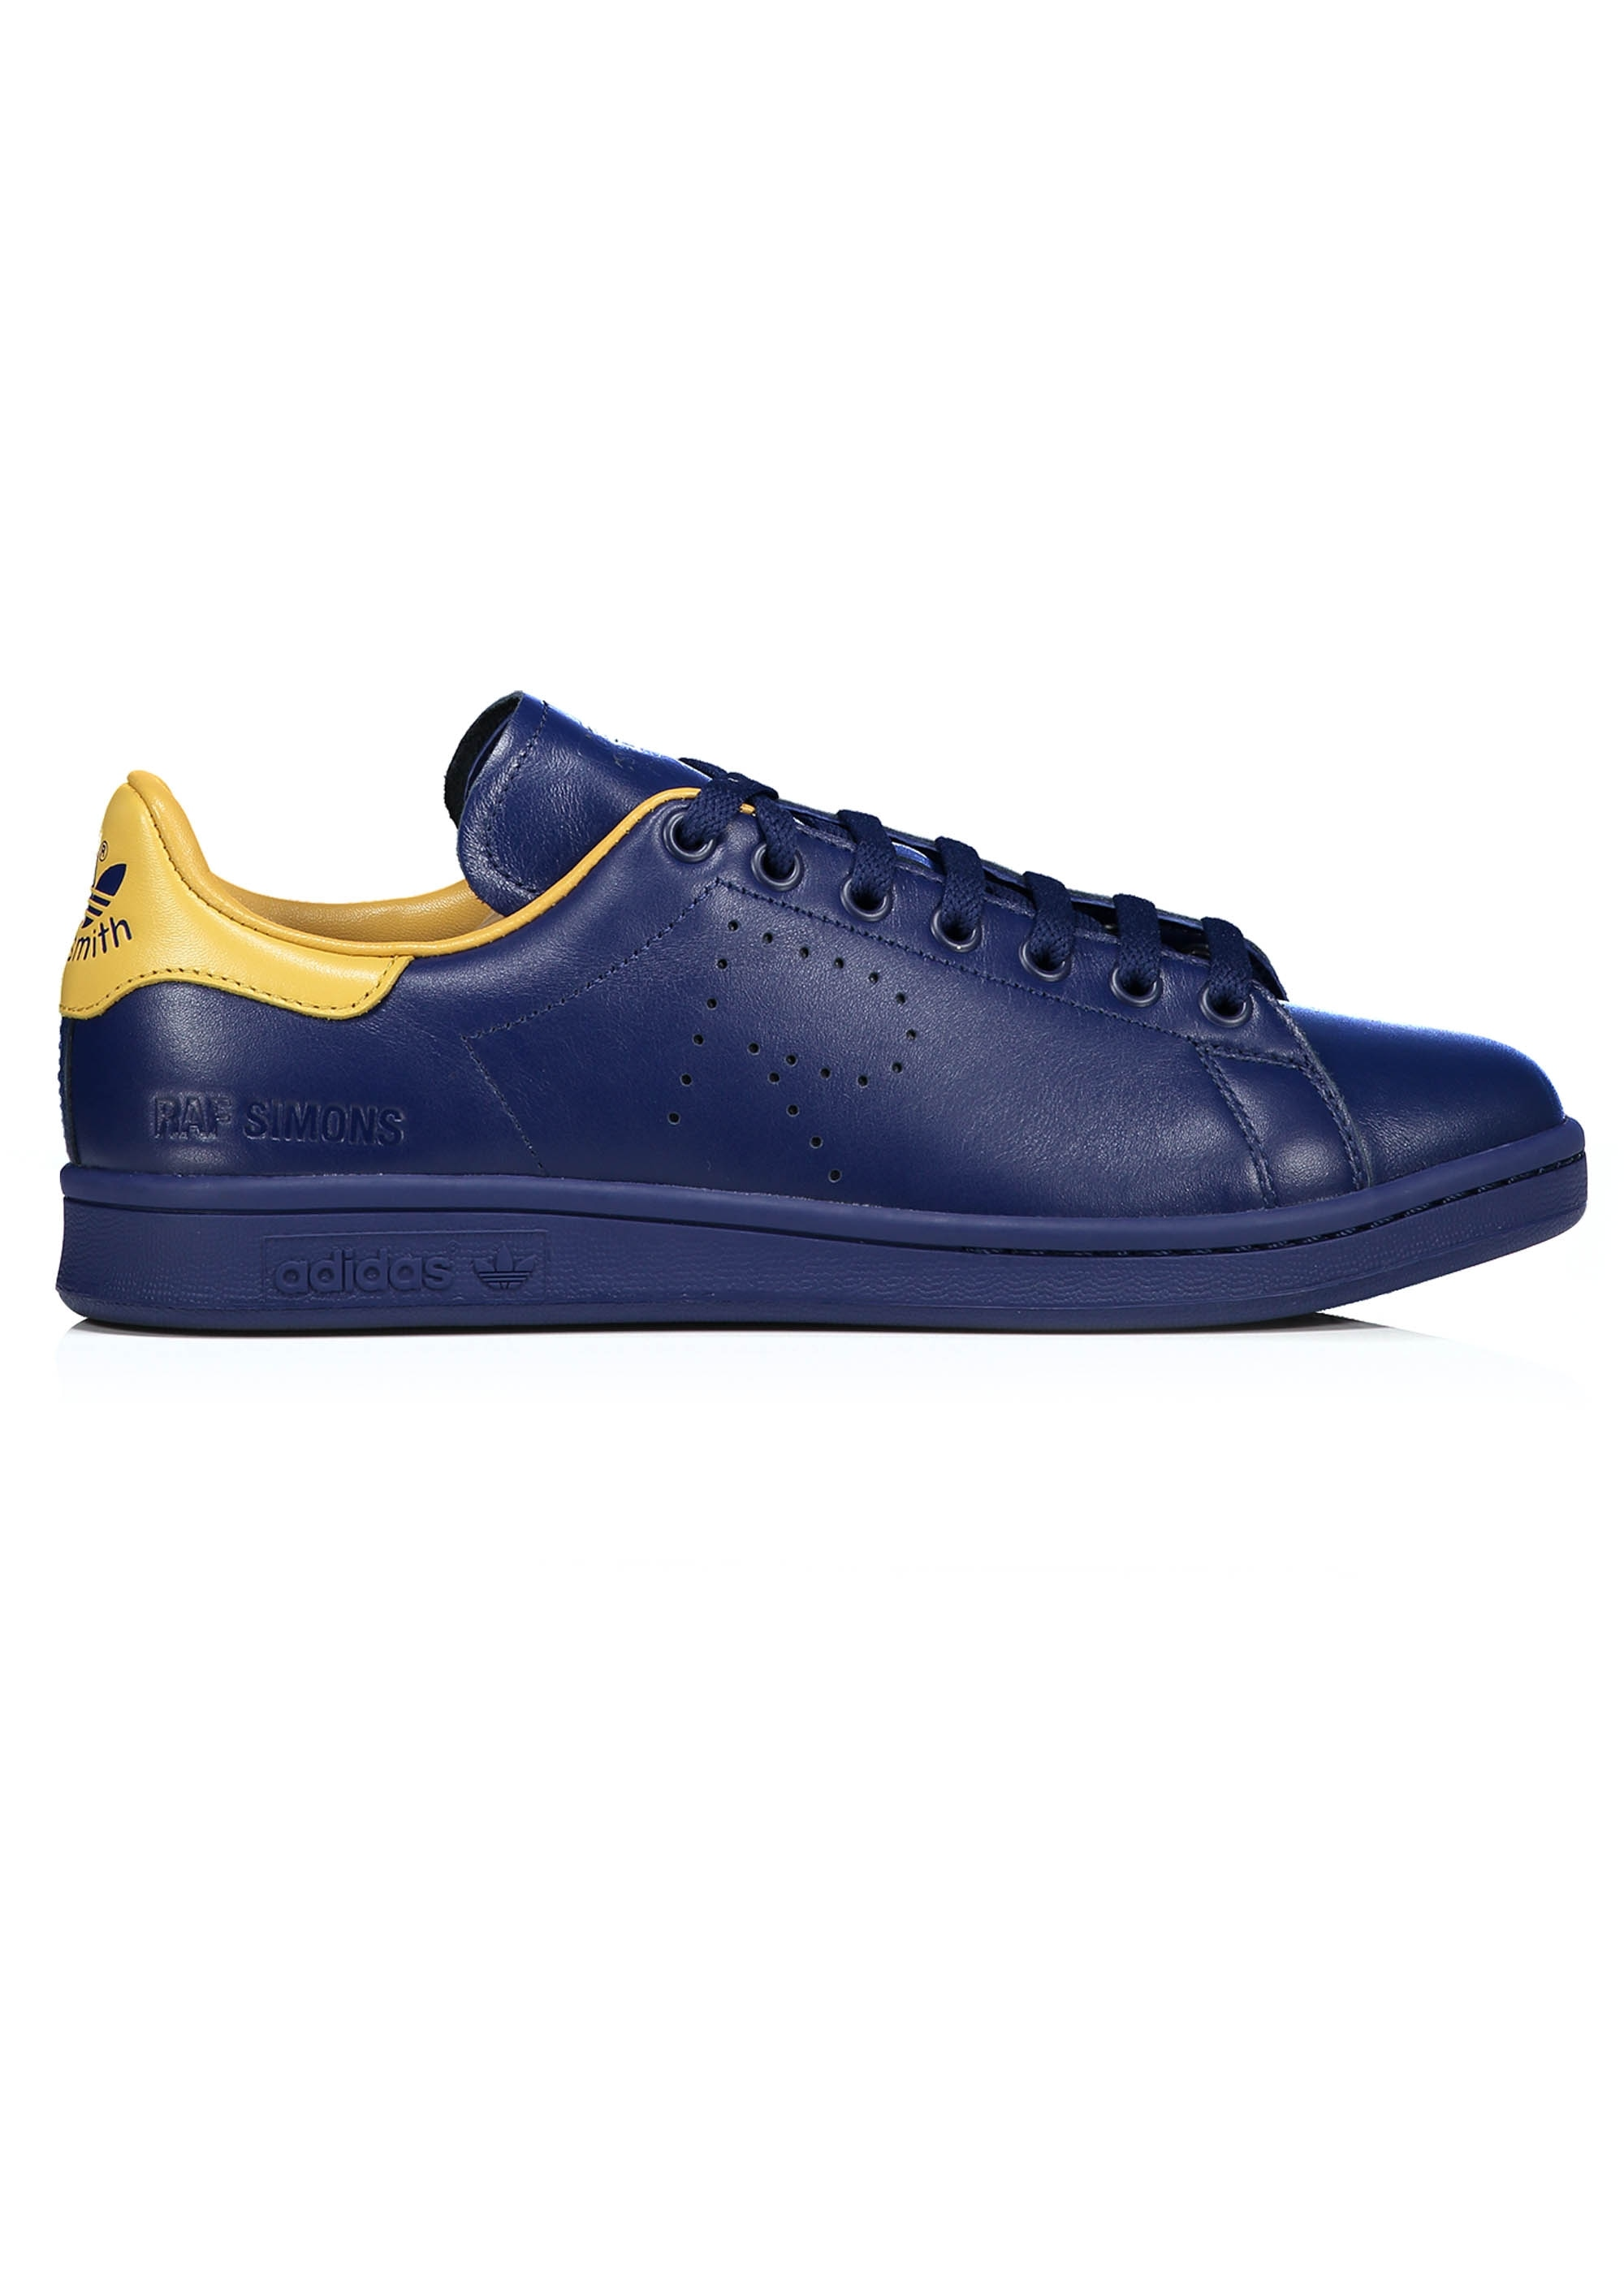 4baf5491996d adidas by Raf Simons Stan Smith - Night Sky - Trainers from Triads UK